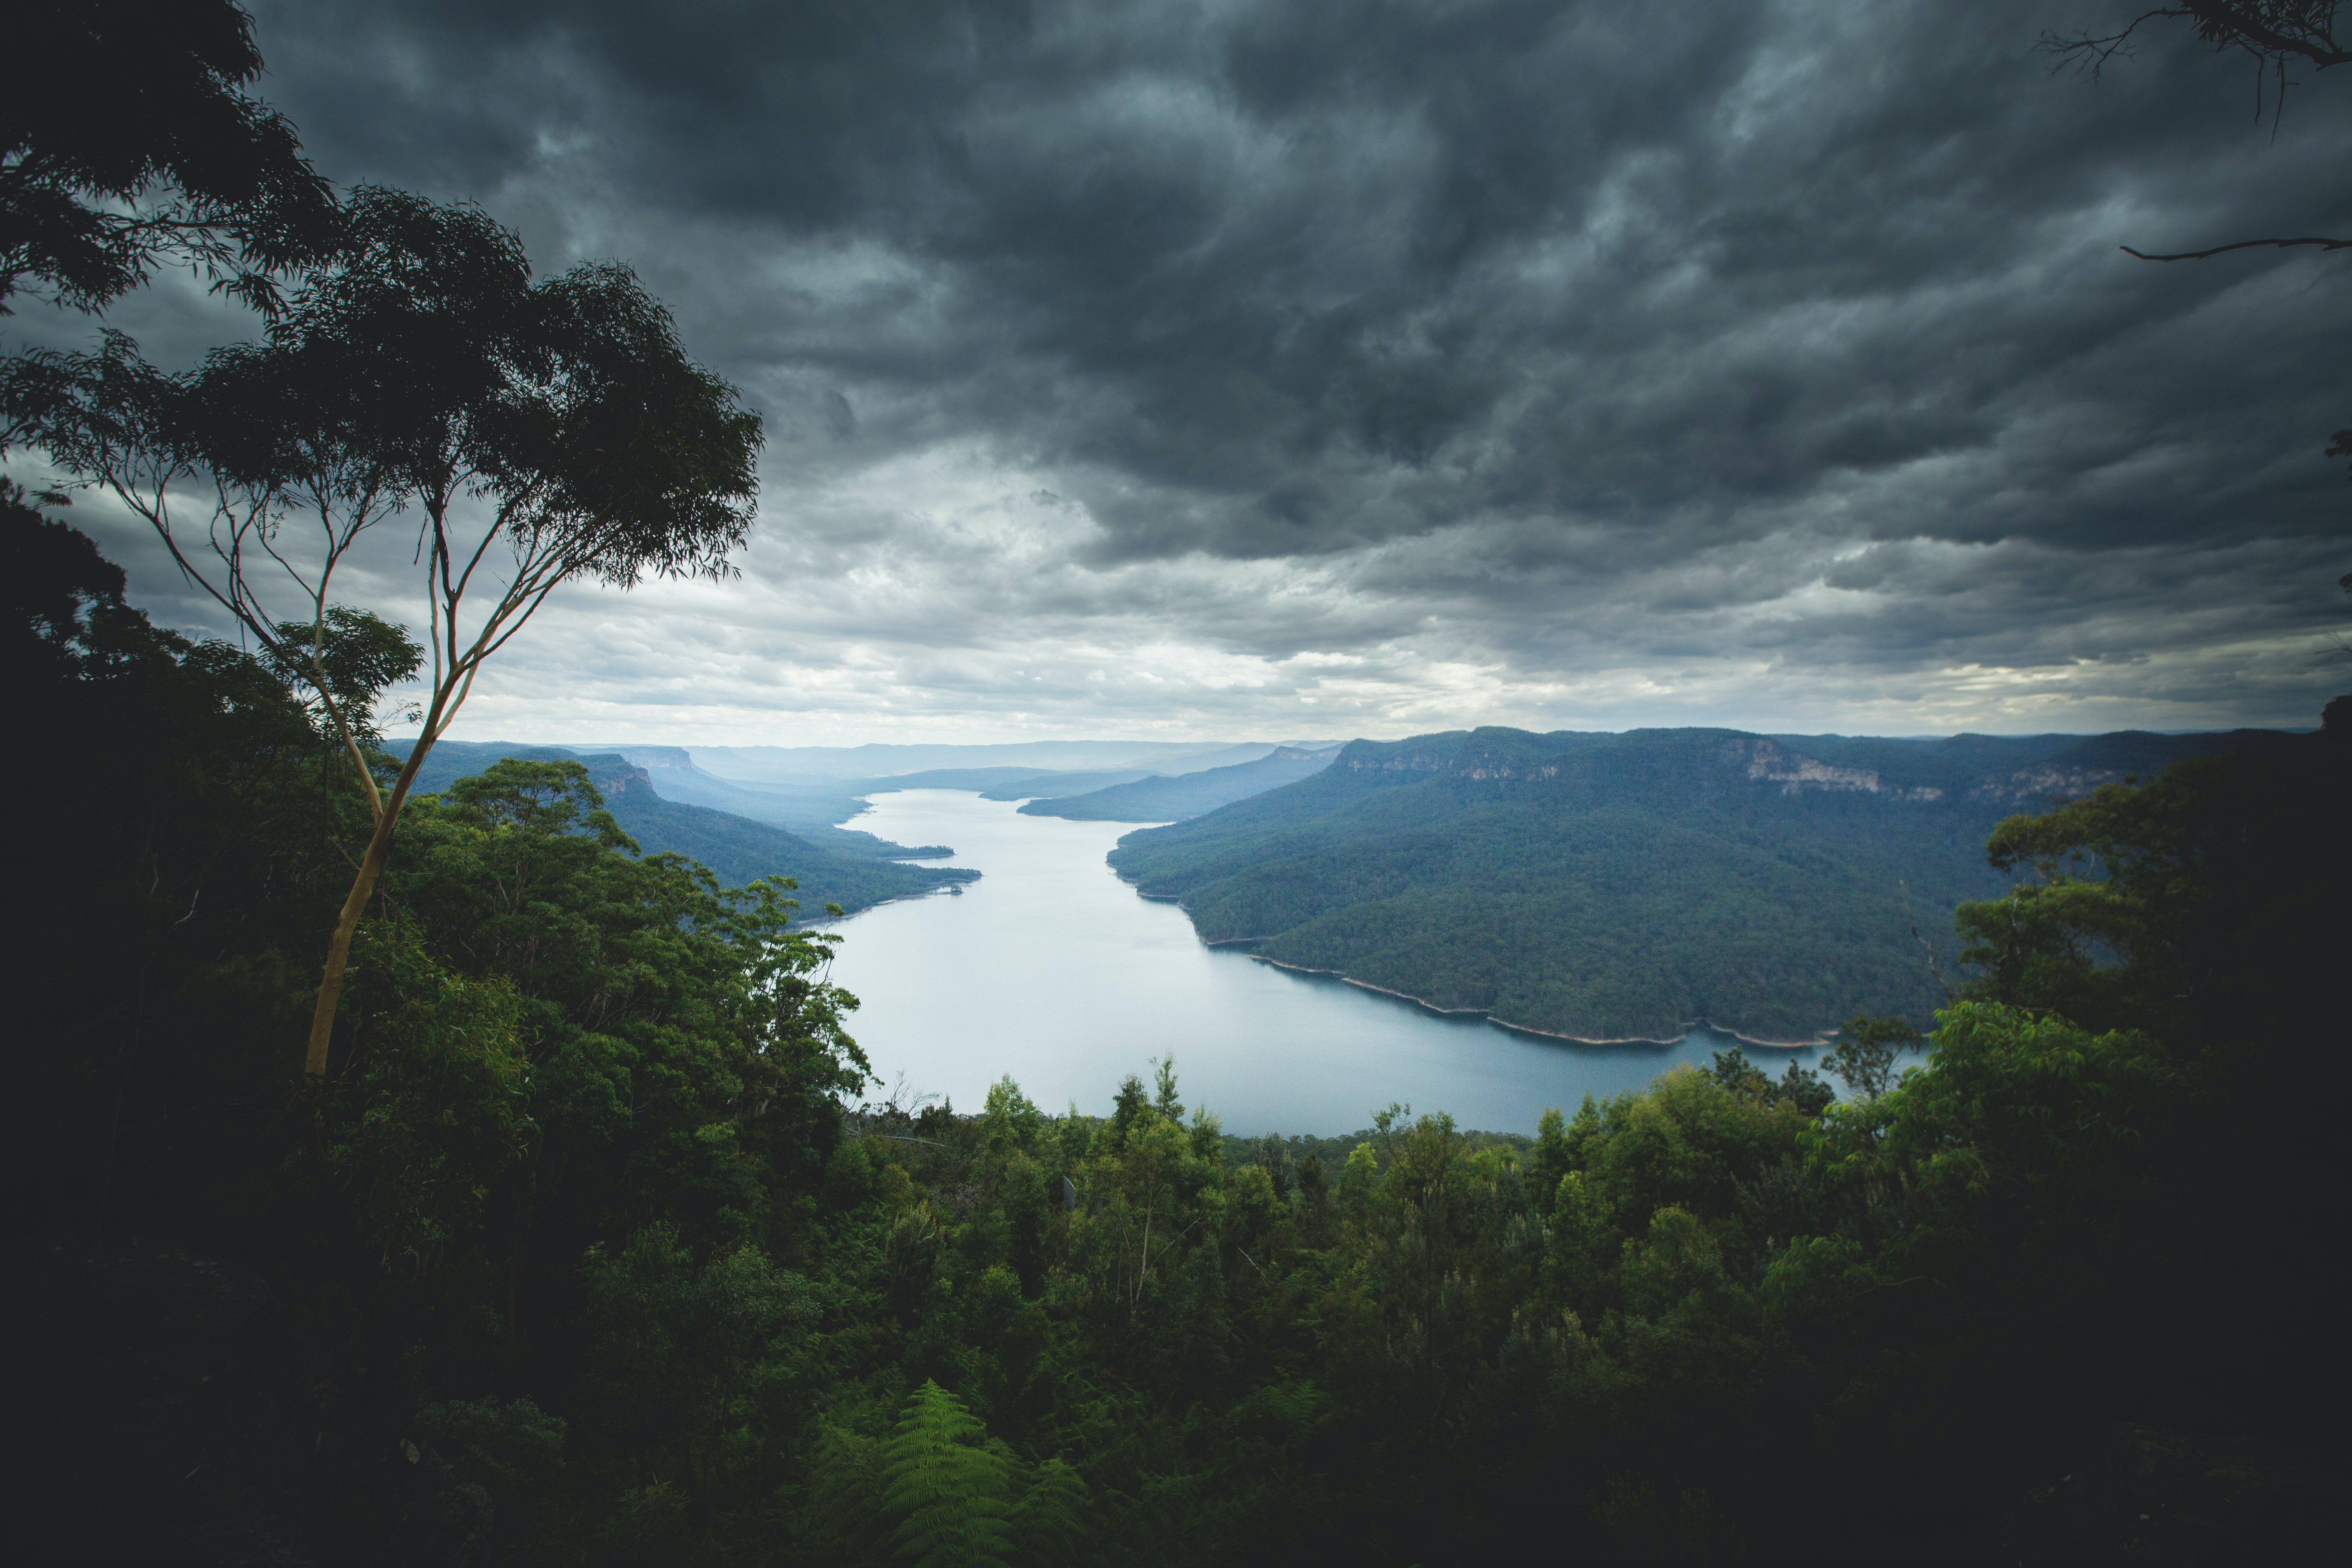 A lake in the Blue Mountains under overcast sky